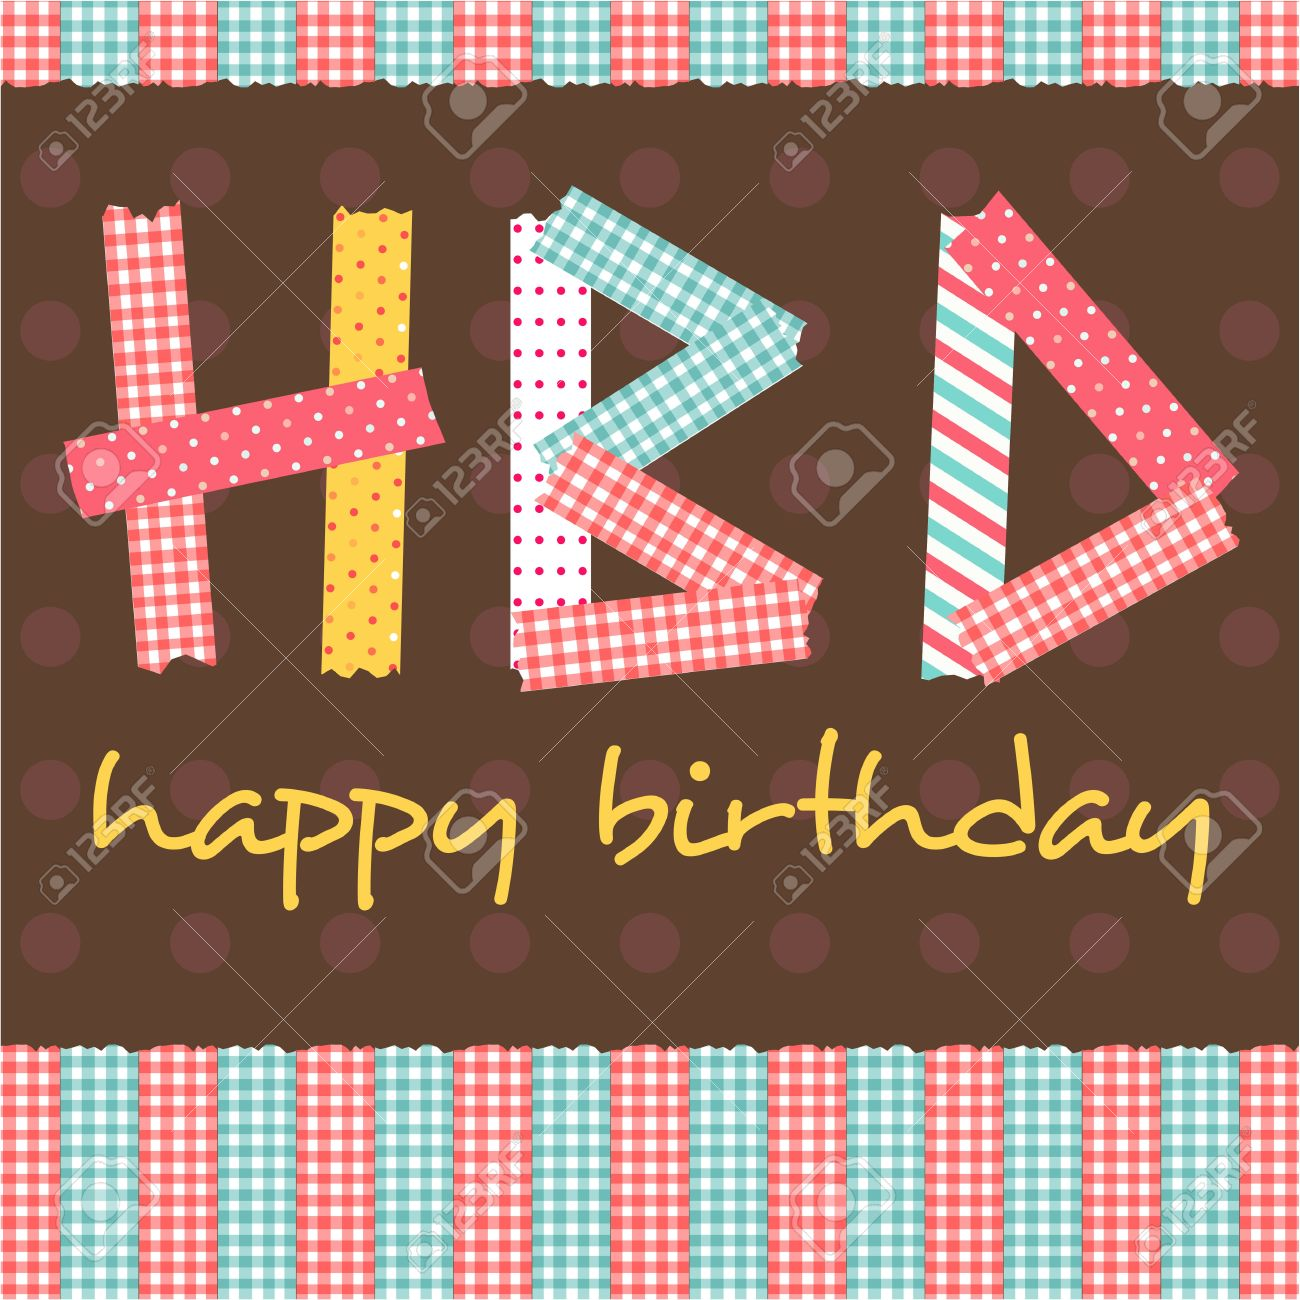 Happy Birthday Card Scrapbook Style Royalty Free Cliparts Vectors And Stock Illustration Image 18003537